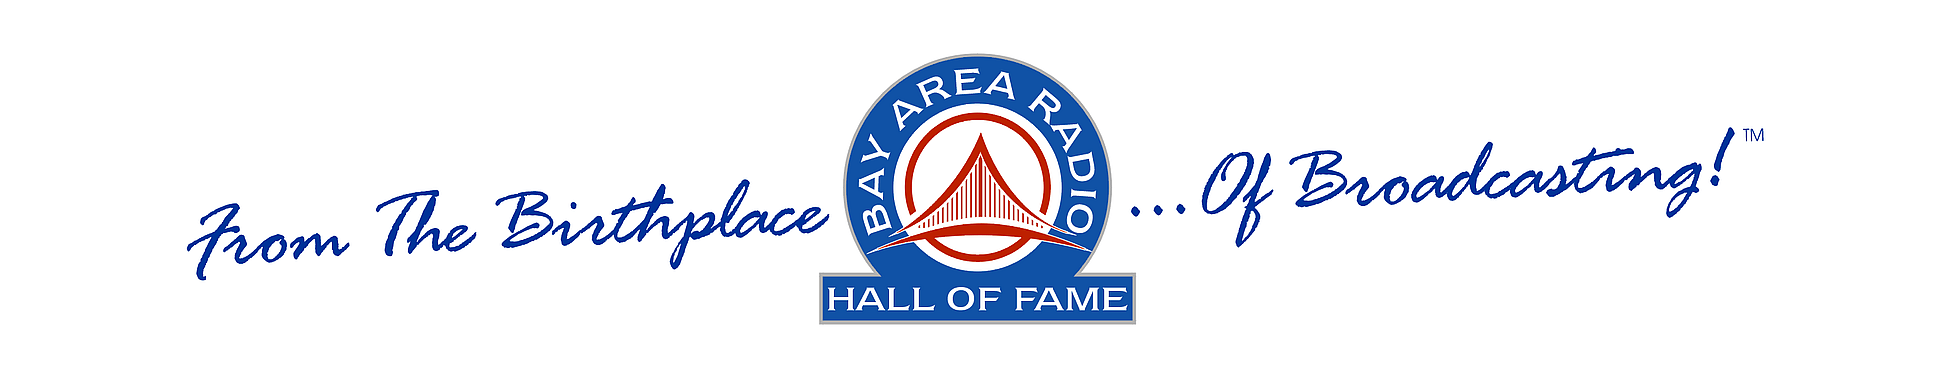 BARHOF Birthplace Logo (Web Header)